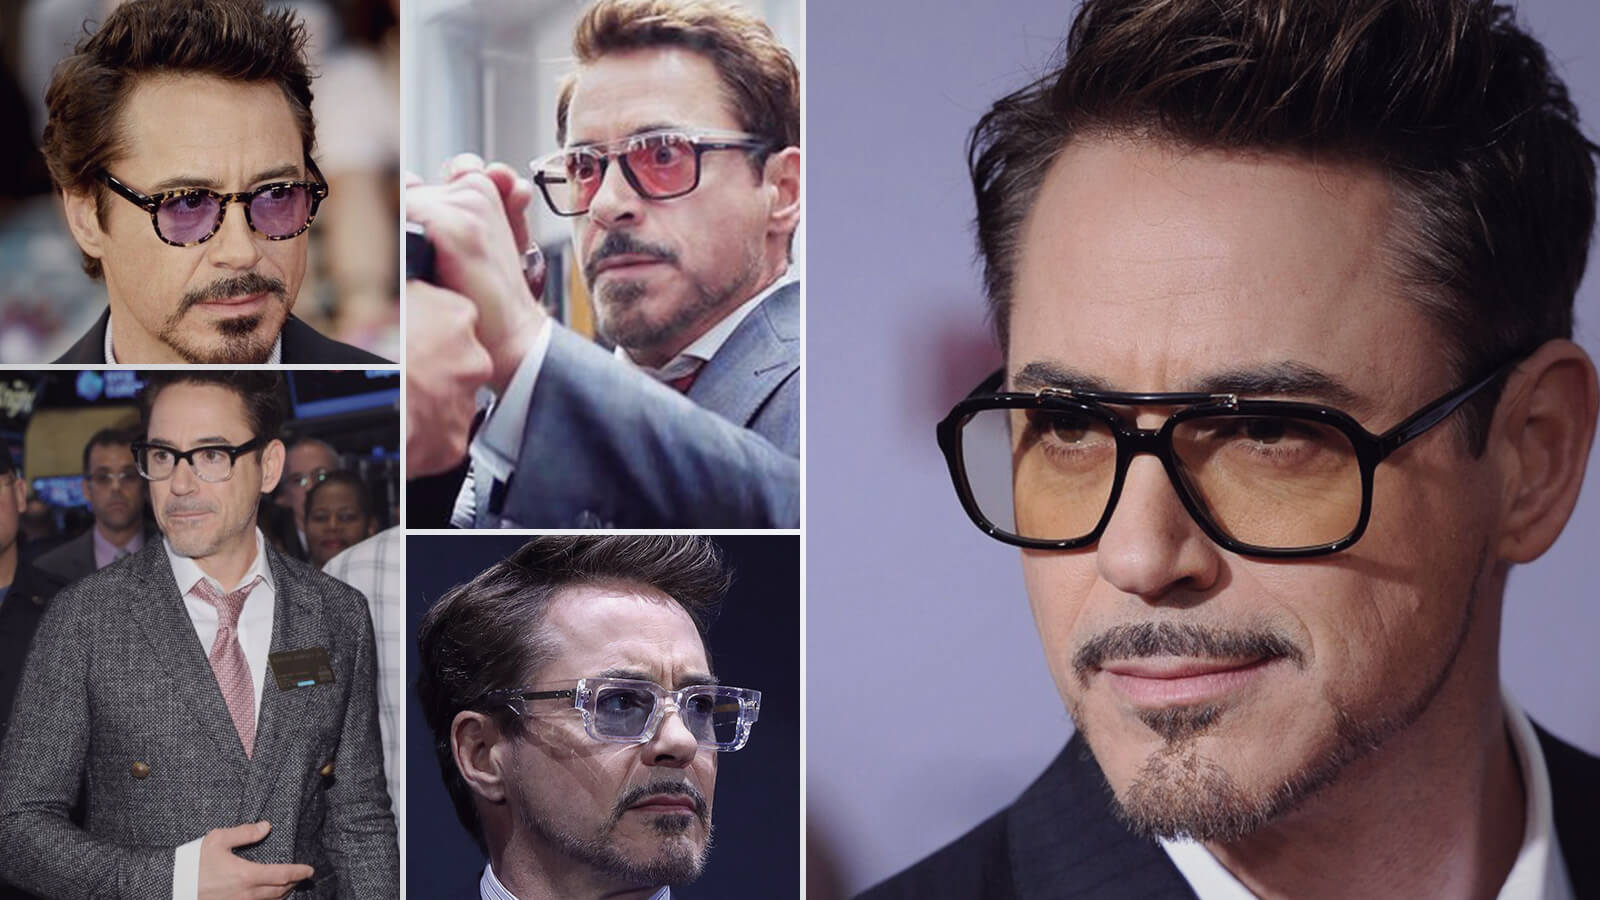 Time to Discover the Top 10 Robert Downey Jr Glasses and Sunglasses